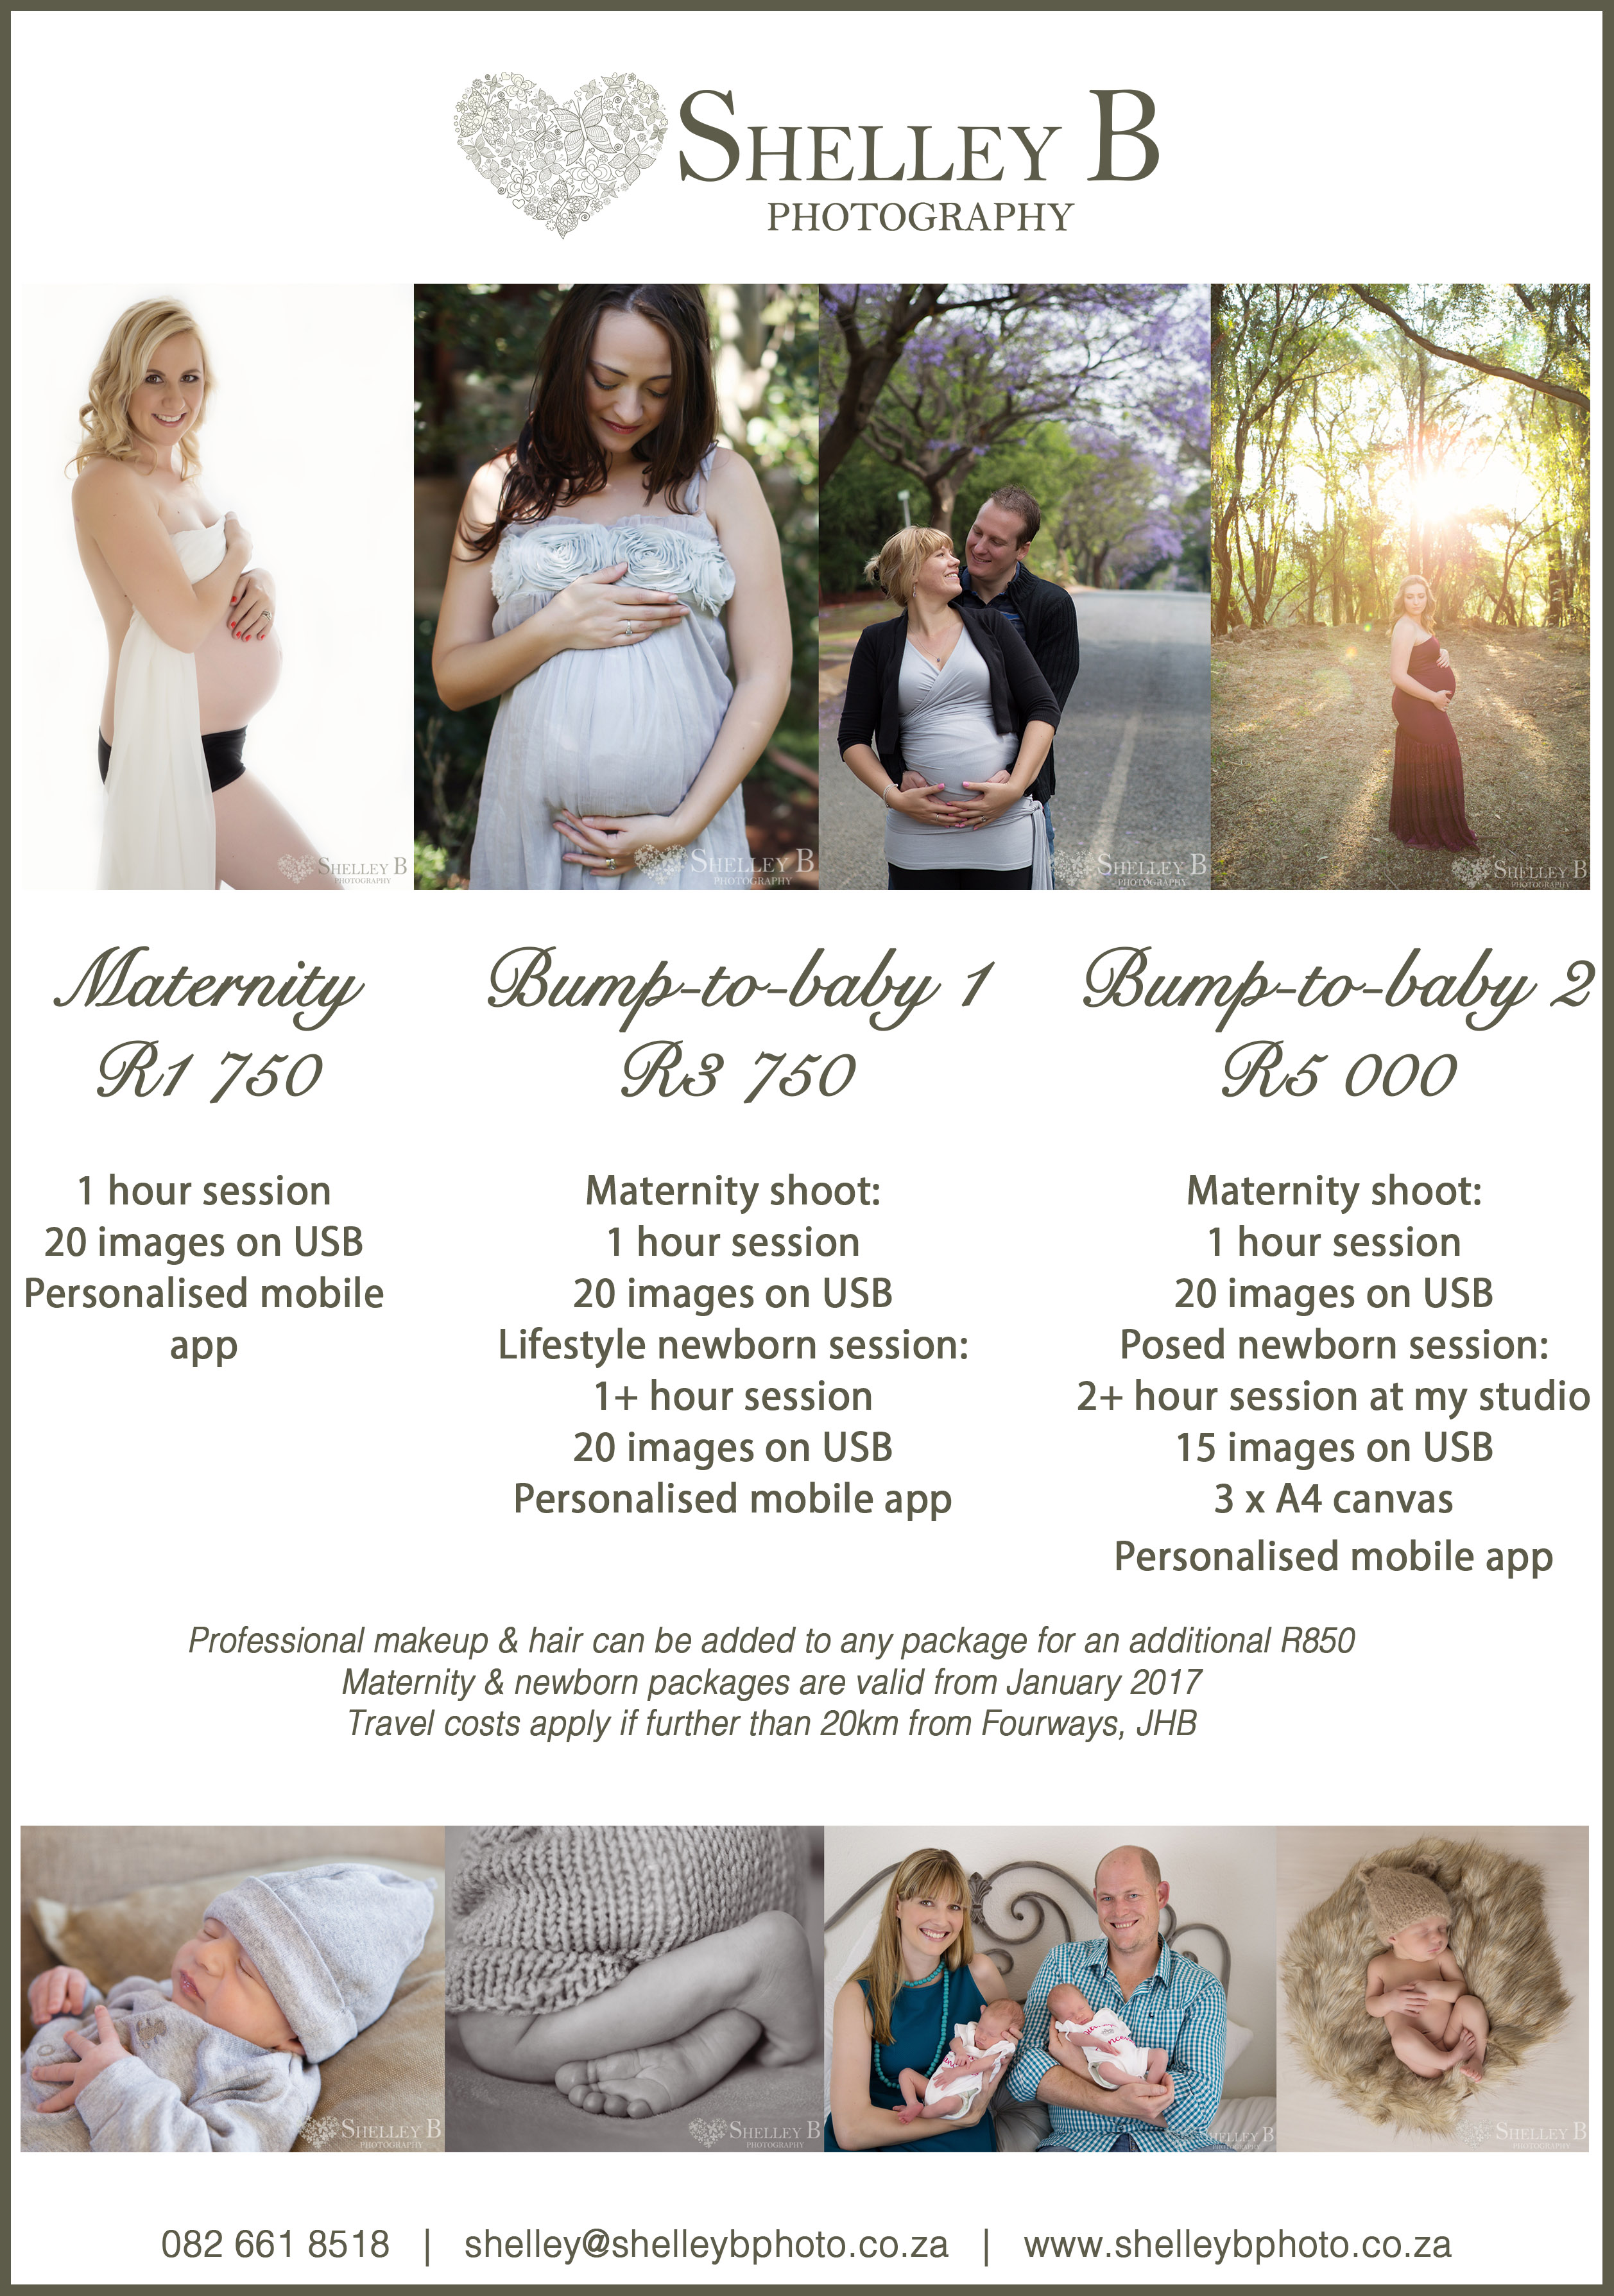 Shelley B Photography Maternity & Newborn Packages